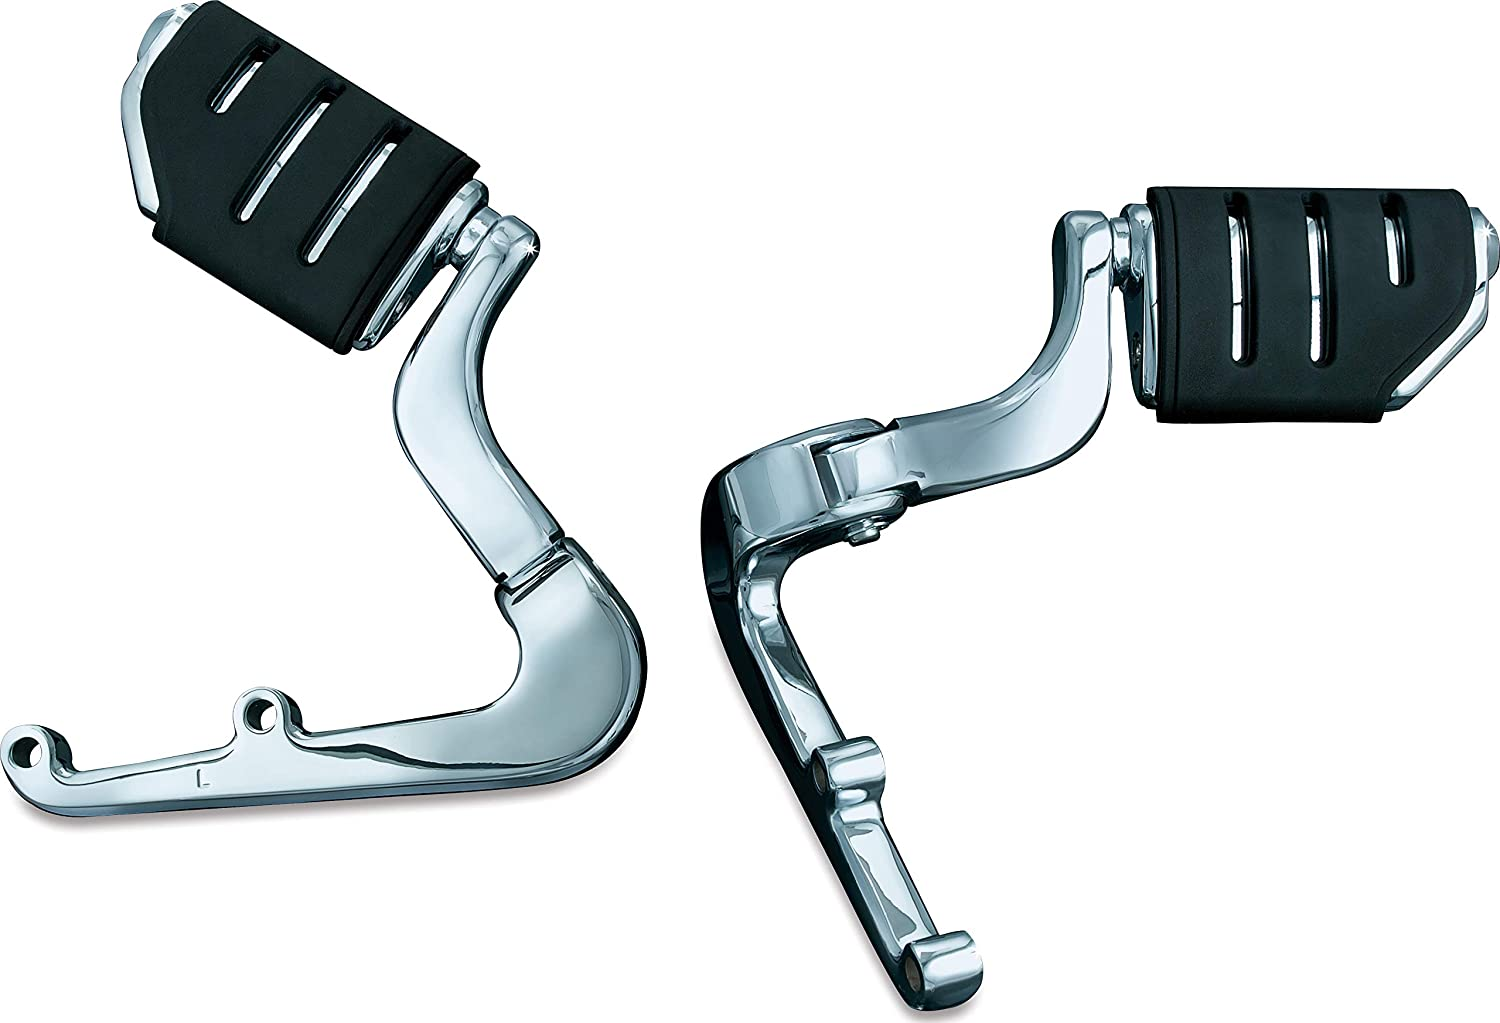 Kuryakyn 7016 Motorcycle Max ! Super beauty product restock quality top! 65% OFF Foot Controls: fo Passenger Cruise Pegs